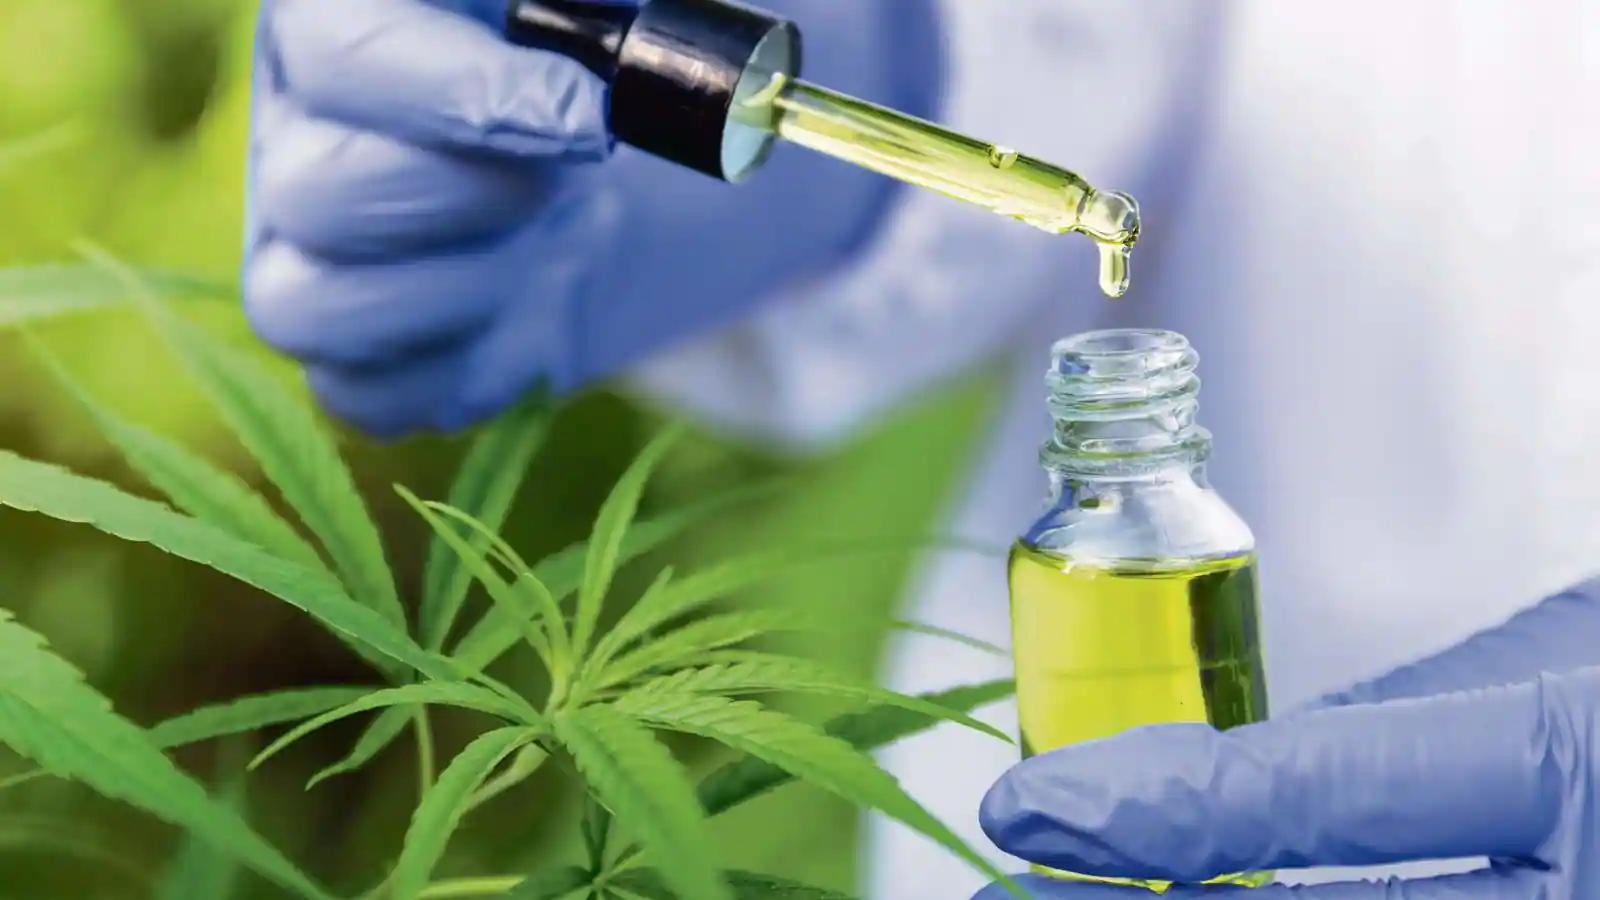 Find out which conditions you must meet for the CBD Purchase (Achat CBD) in France to be effective